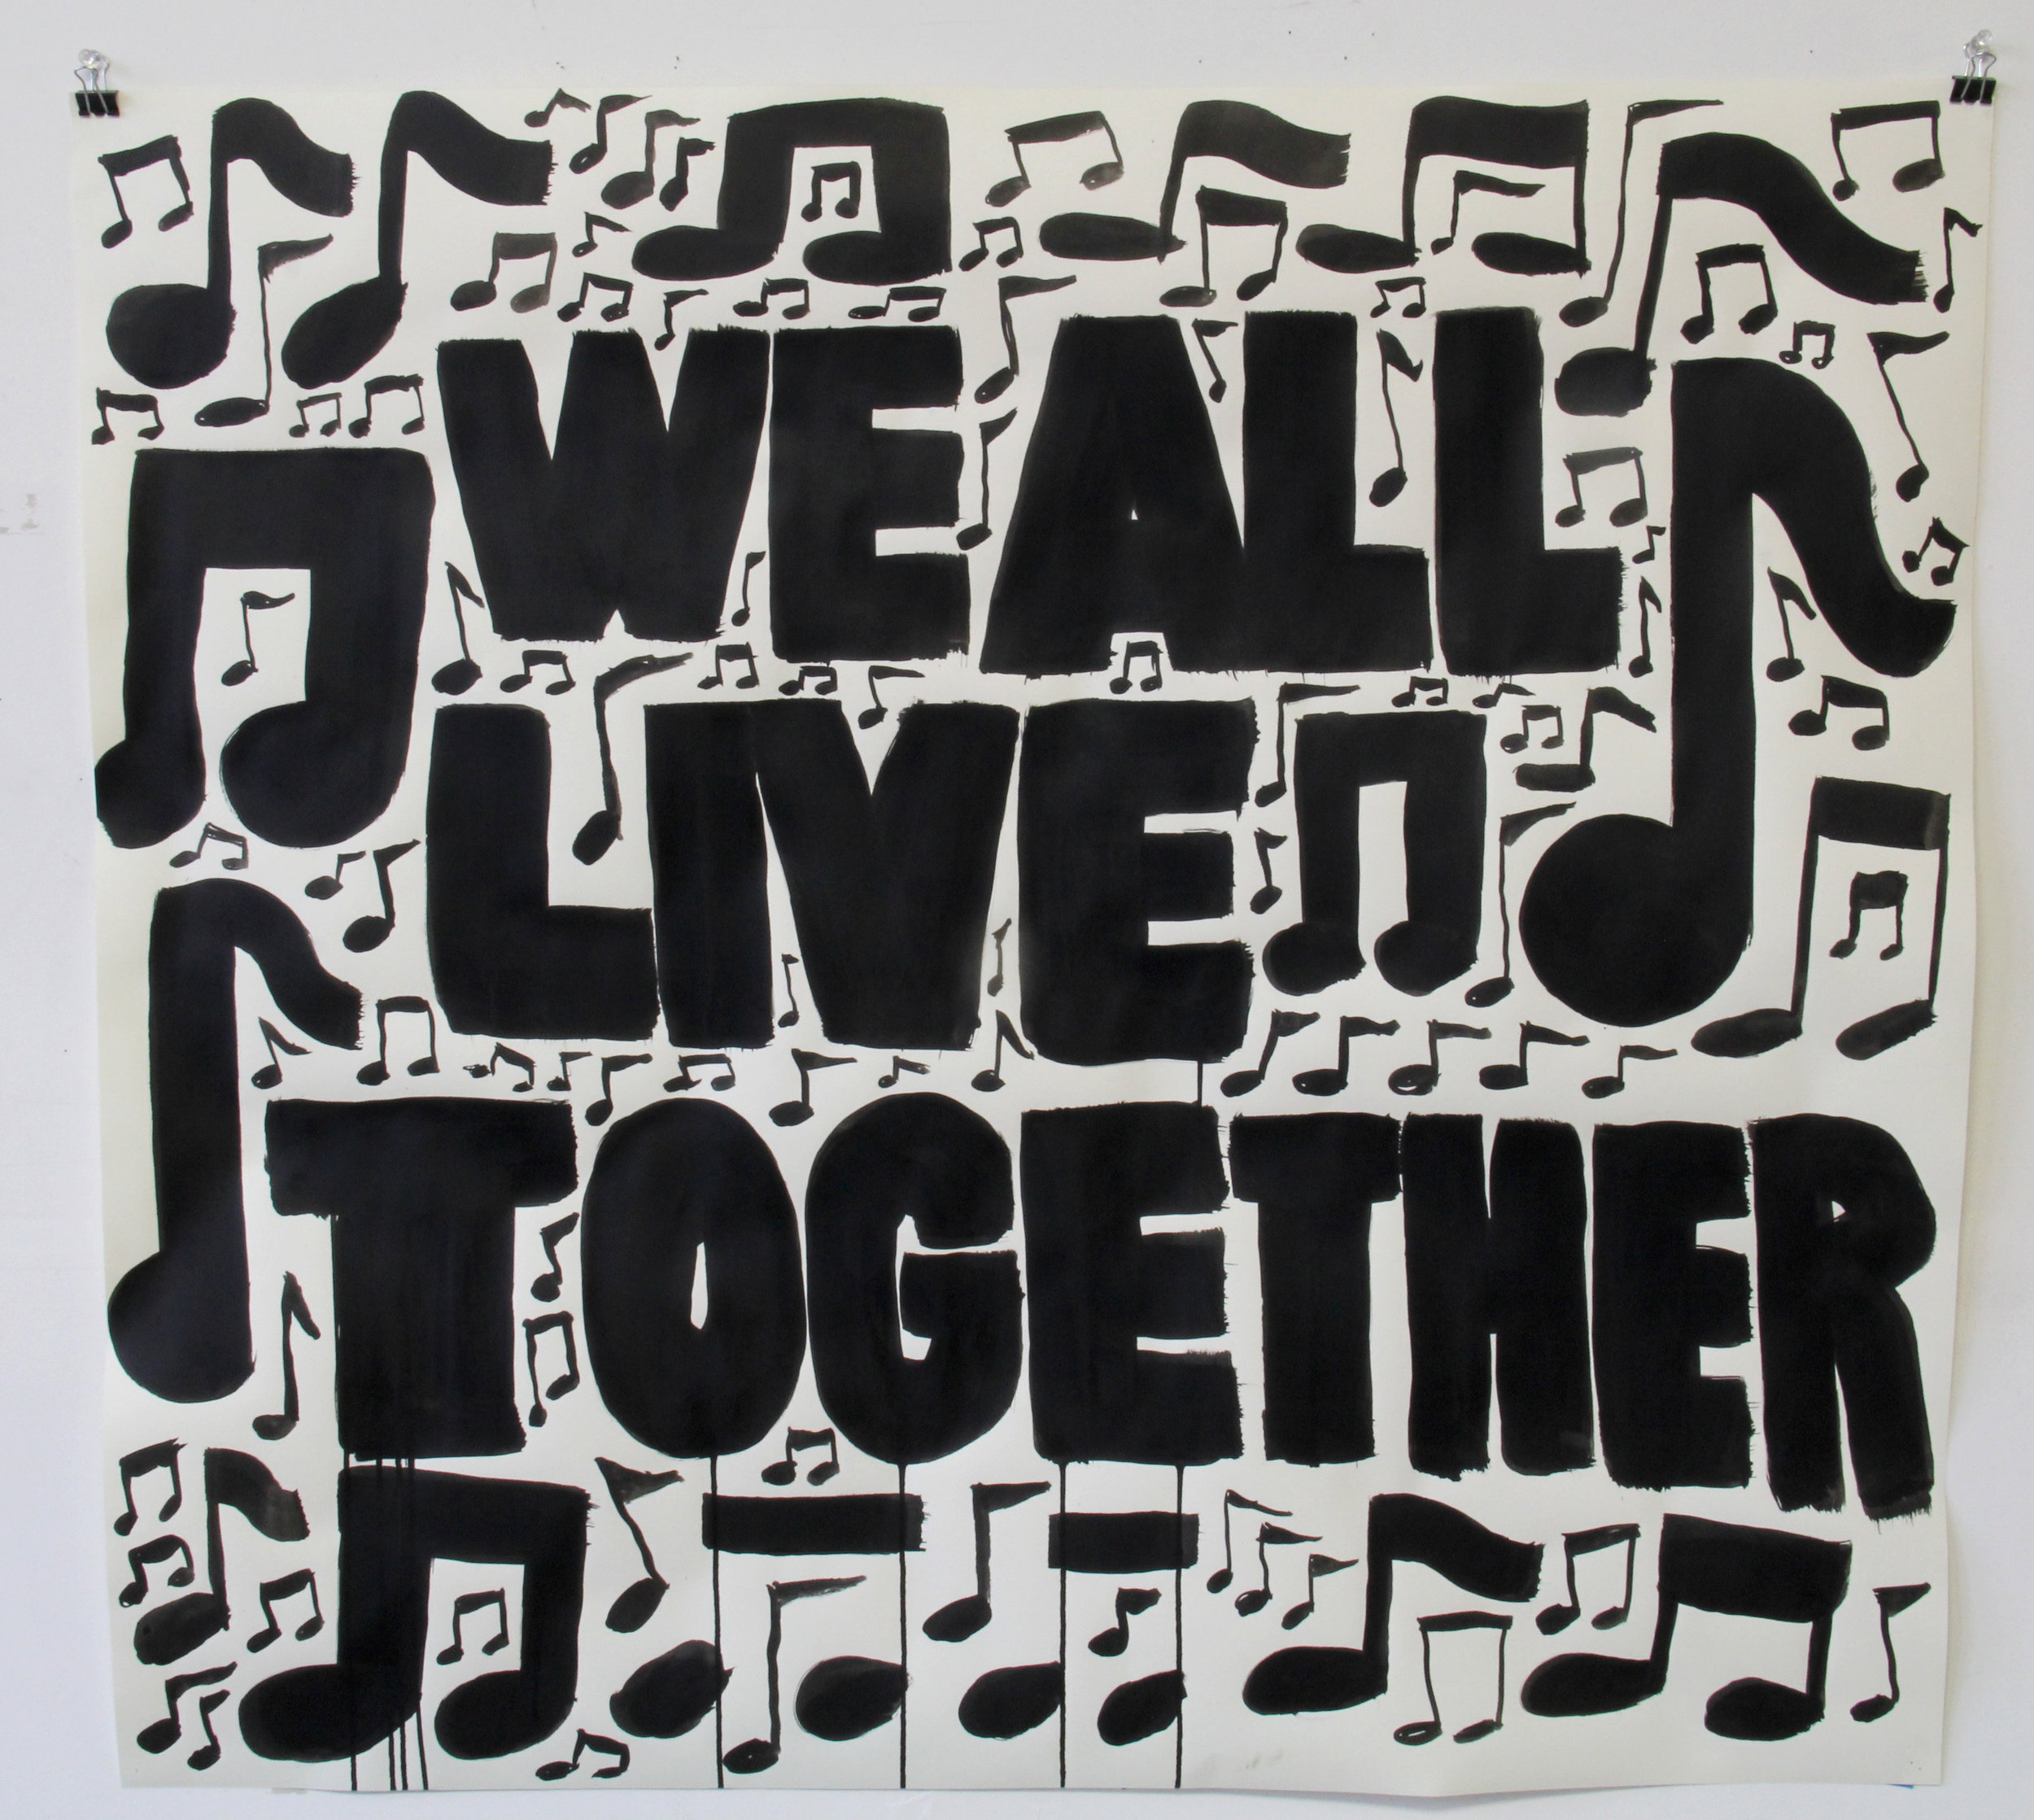 We All Live Together/We All Know the Words